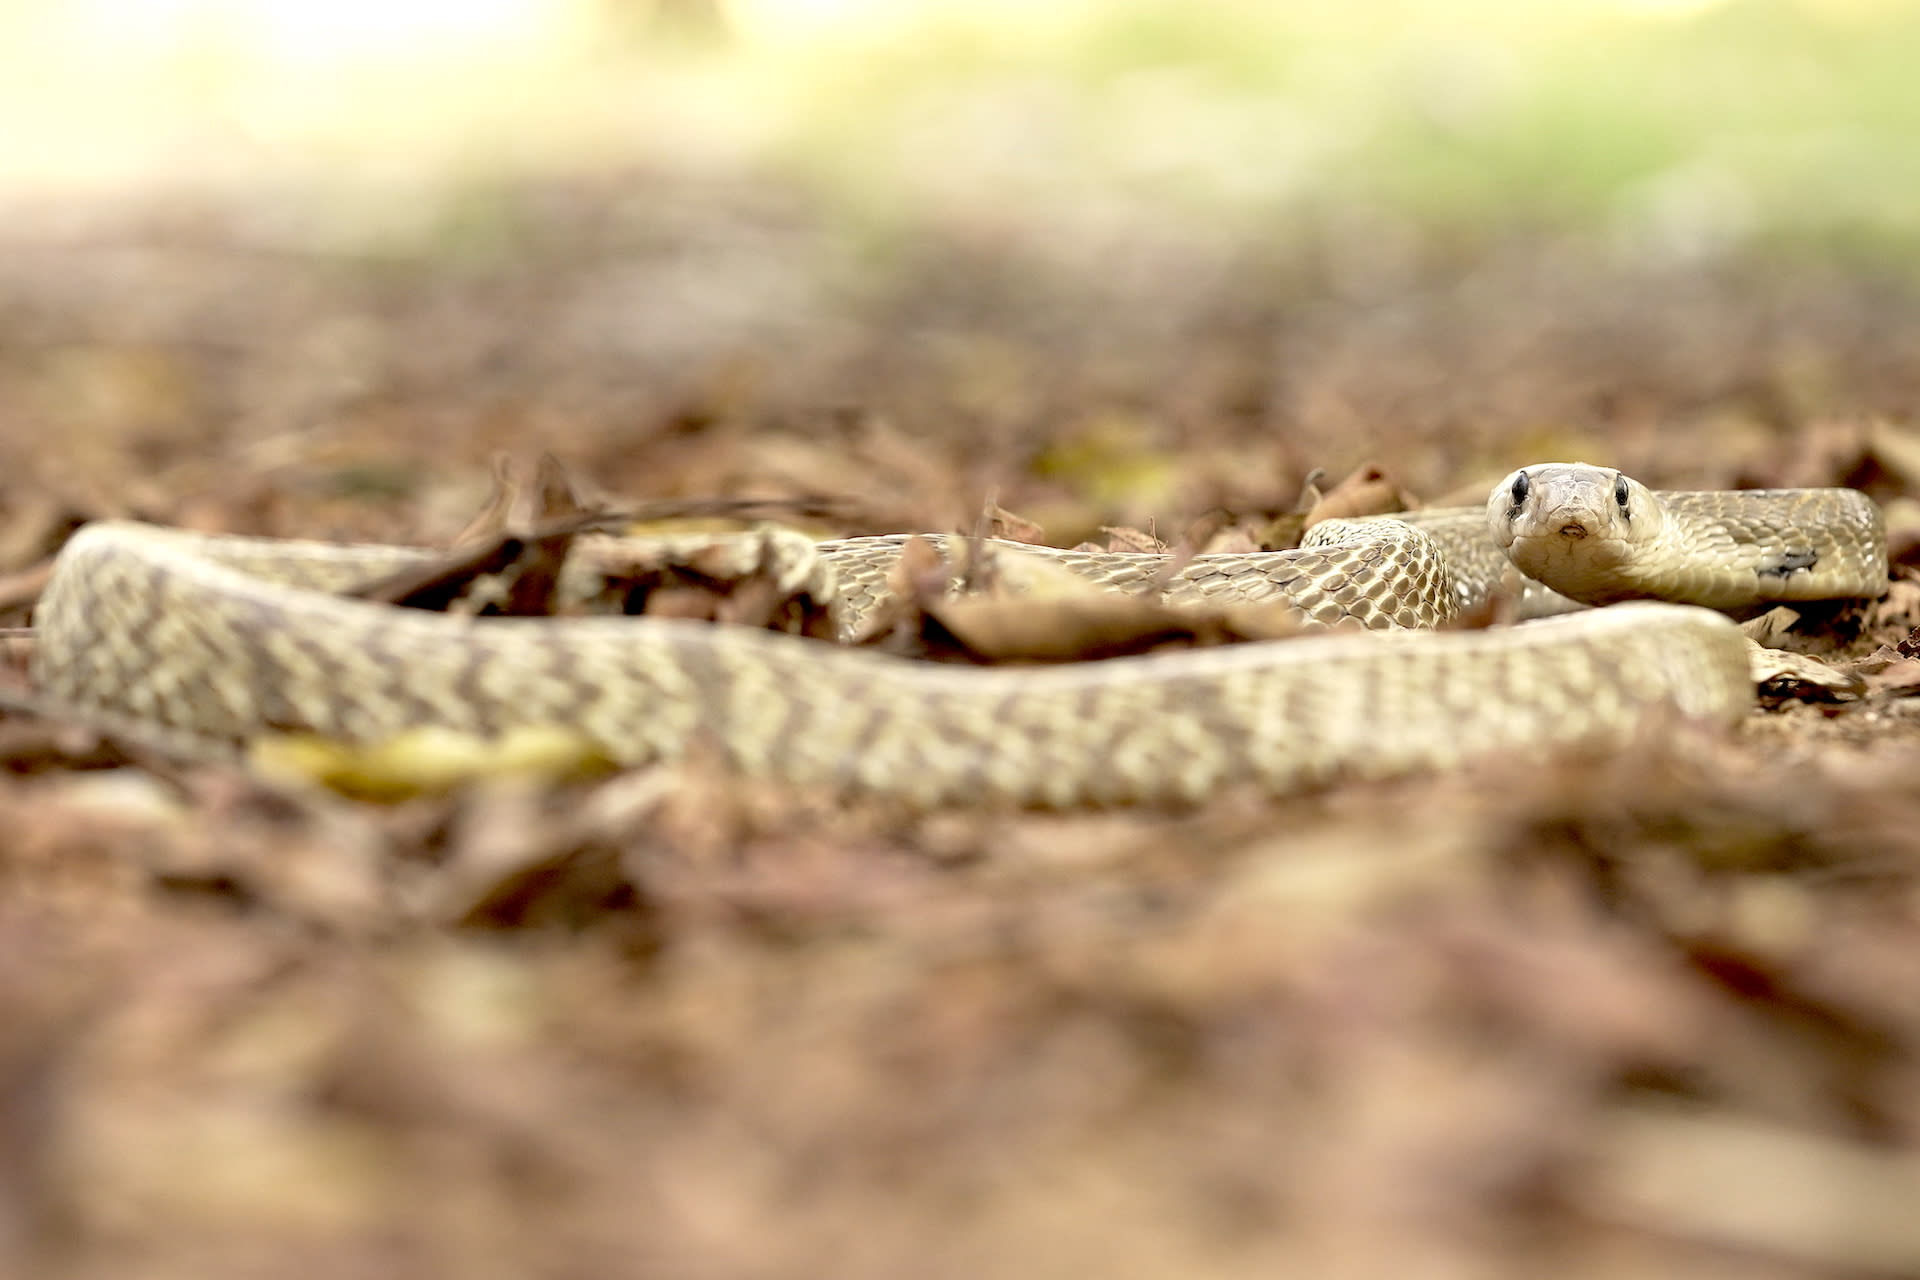 Capable of growing up to around two metres, the cobra mainly feeds on rodents, lizards, and frogs. Photo: Gerry Martin  Cover Photo: Smooth scales, black eyes, and a wide neck and head characterise the spectacled cobra, one of the most common venomous snakes found in India. Cover Photo: Gerry Martin